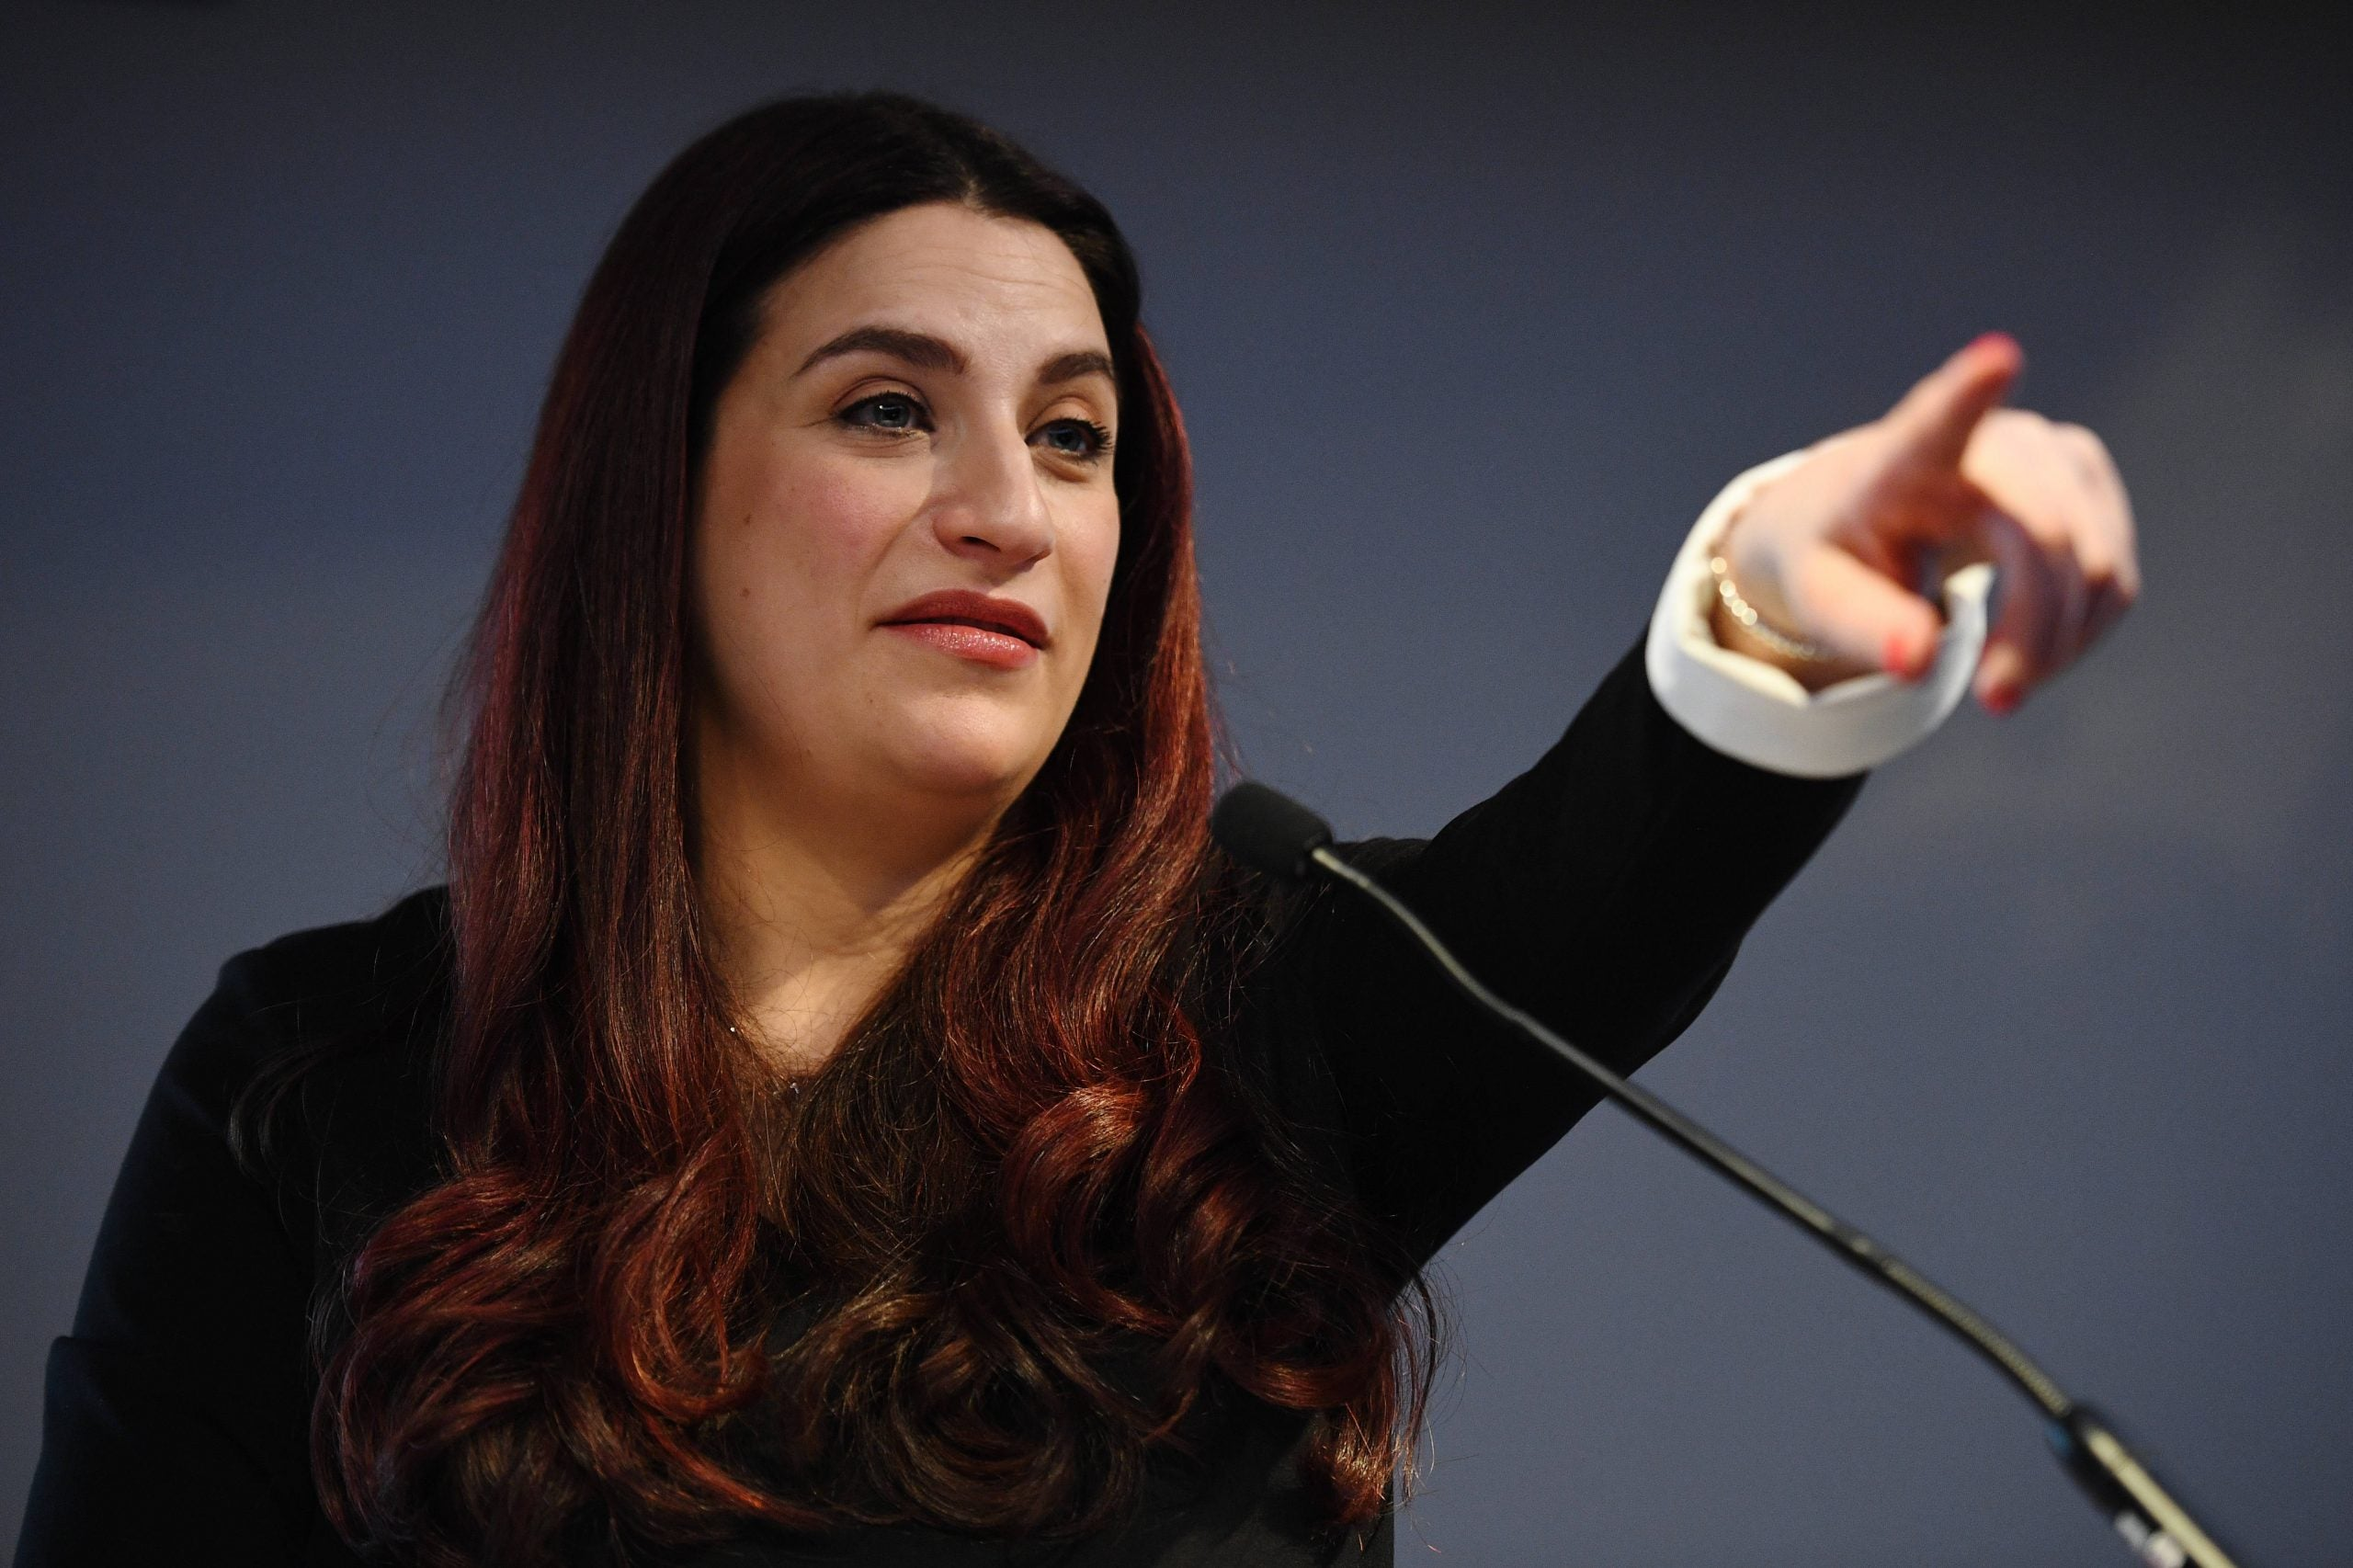 The resignation of Luciana Berger is a watershed moment for many Jewish Labour members